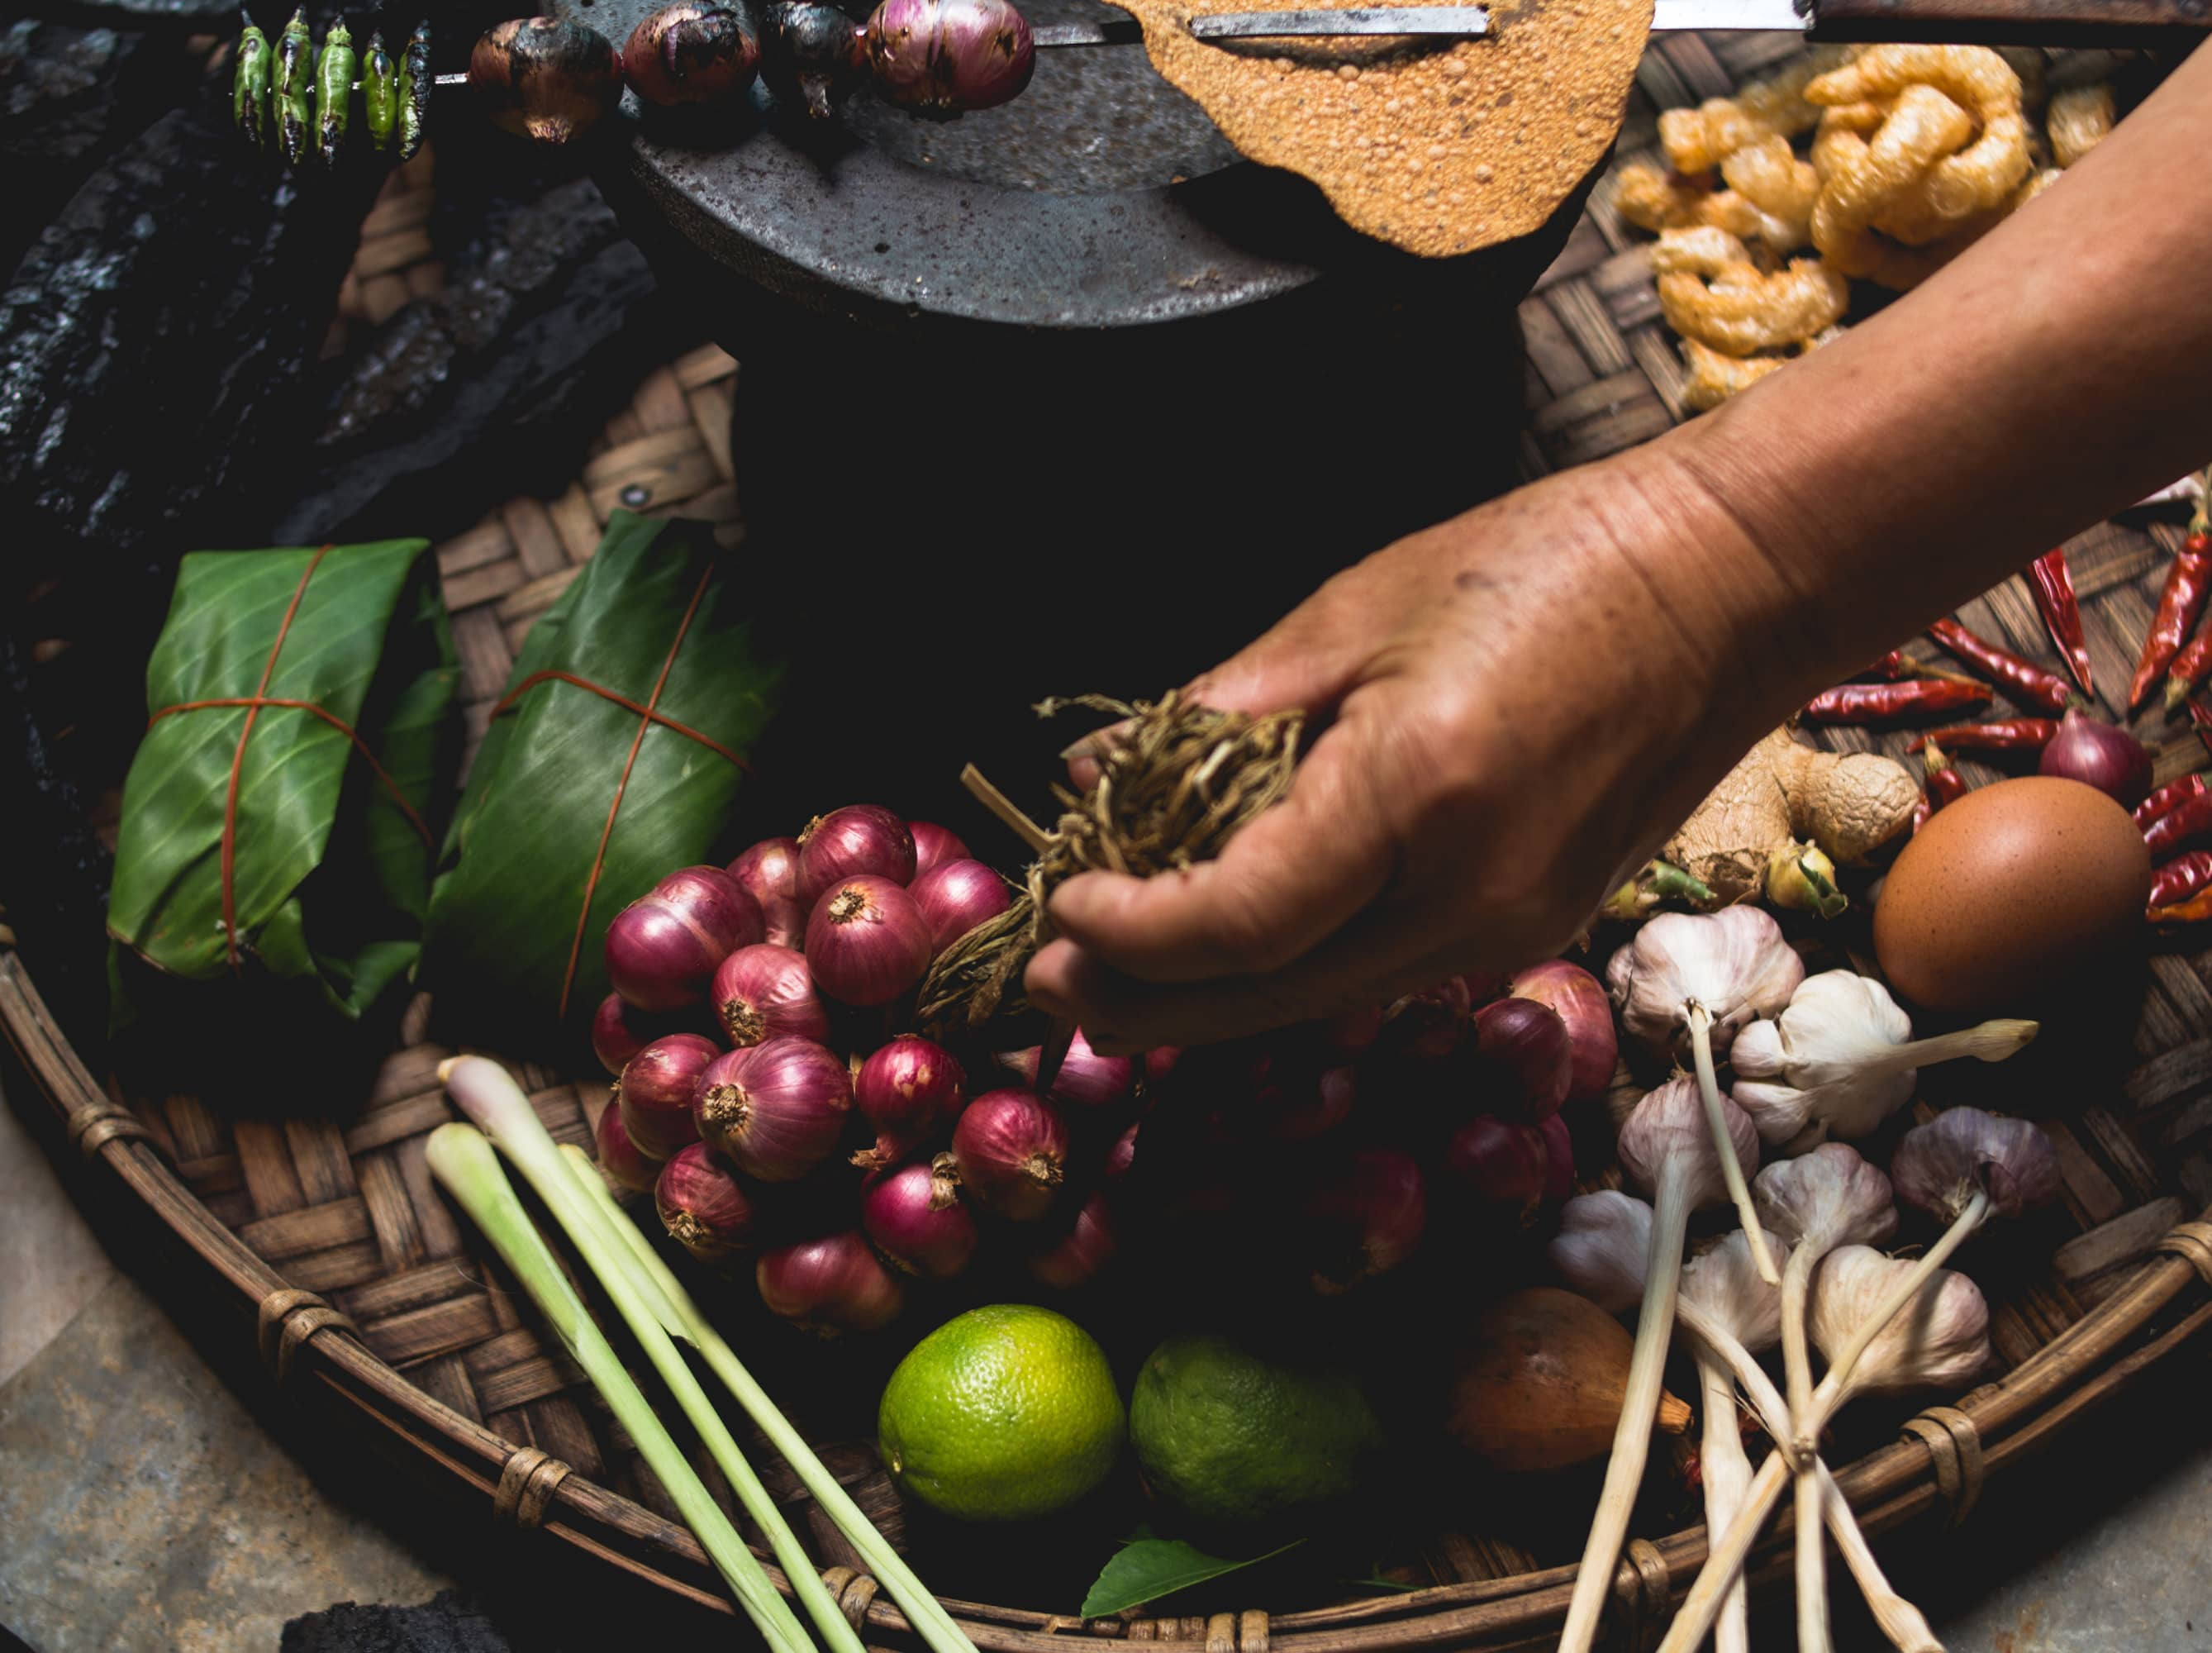 Take a hands-on Thai cooking class with a local chef.